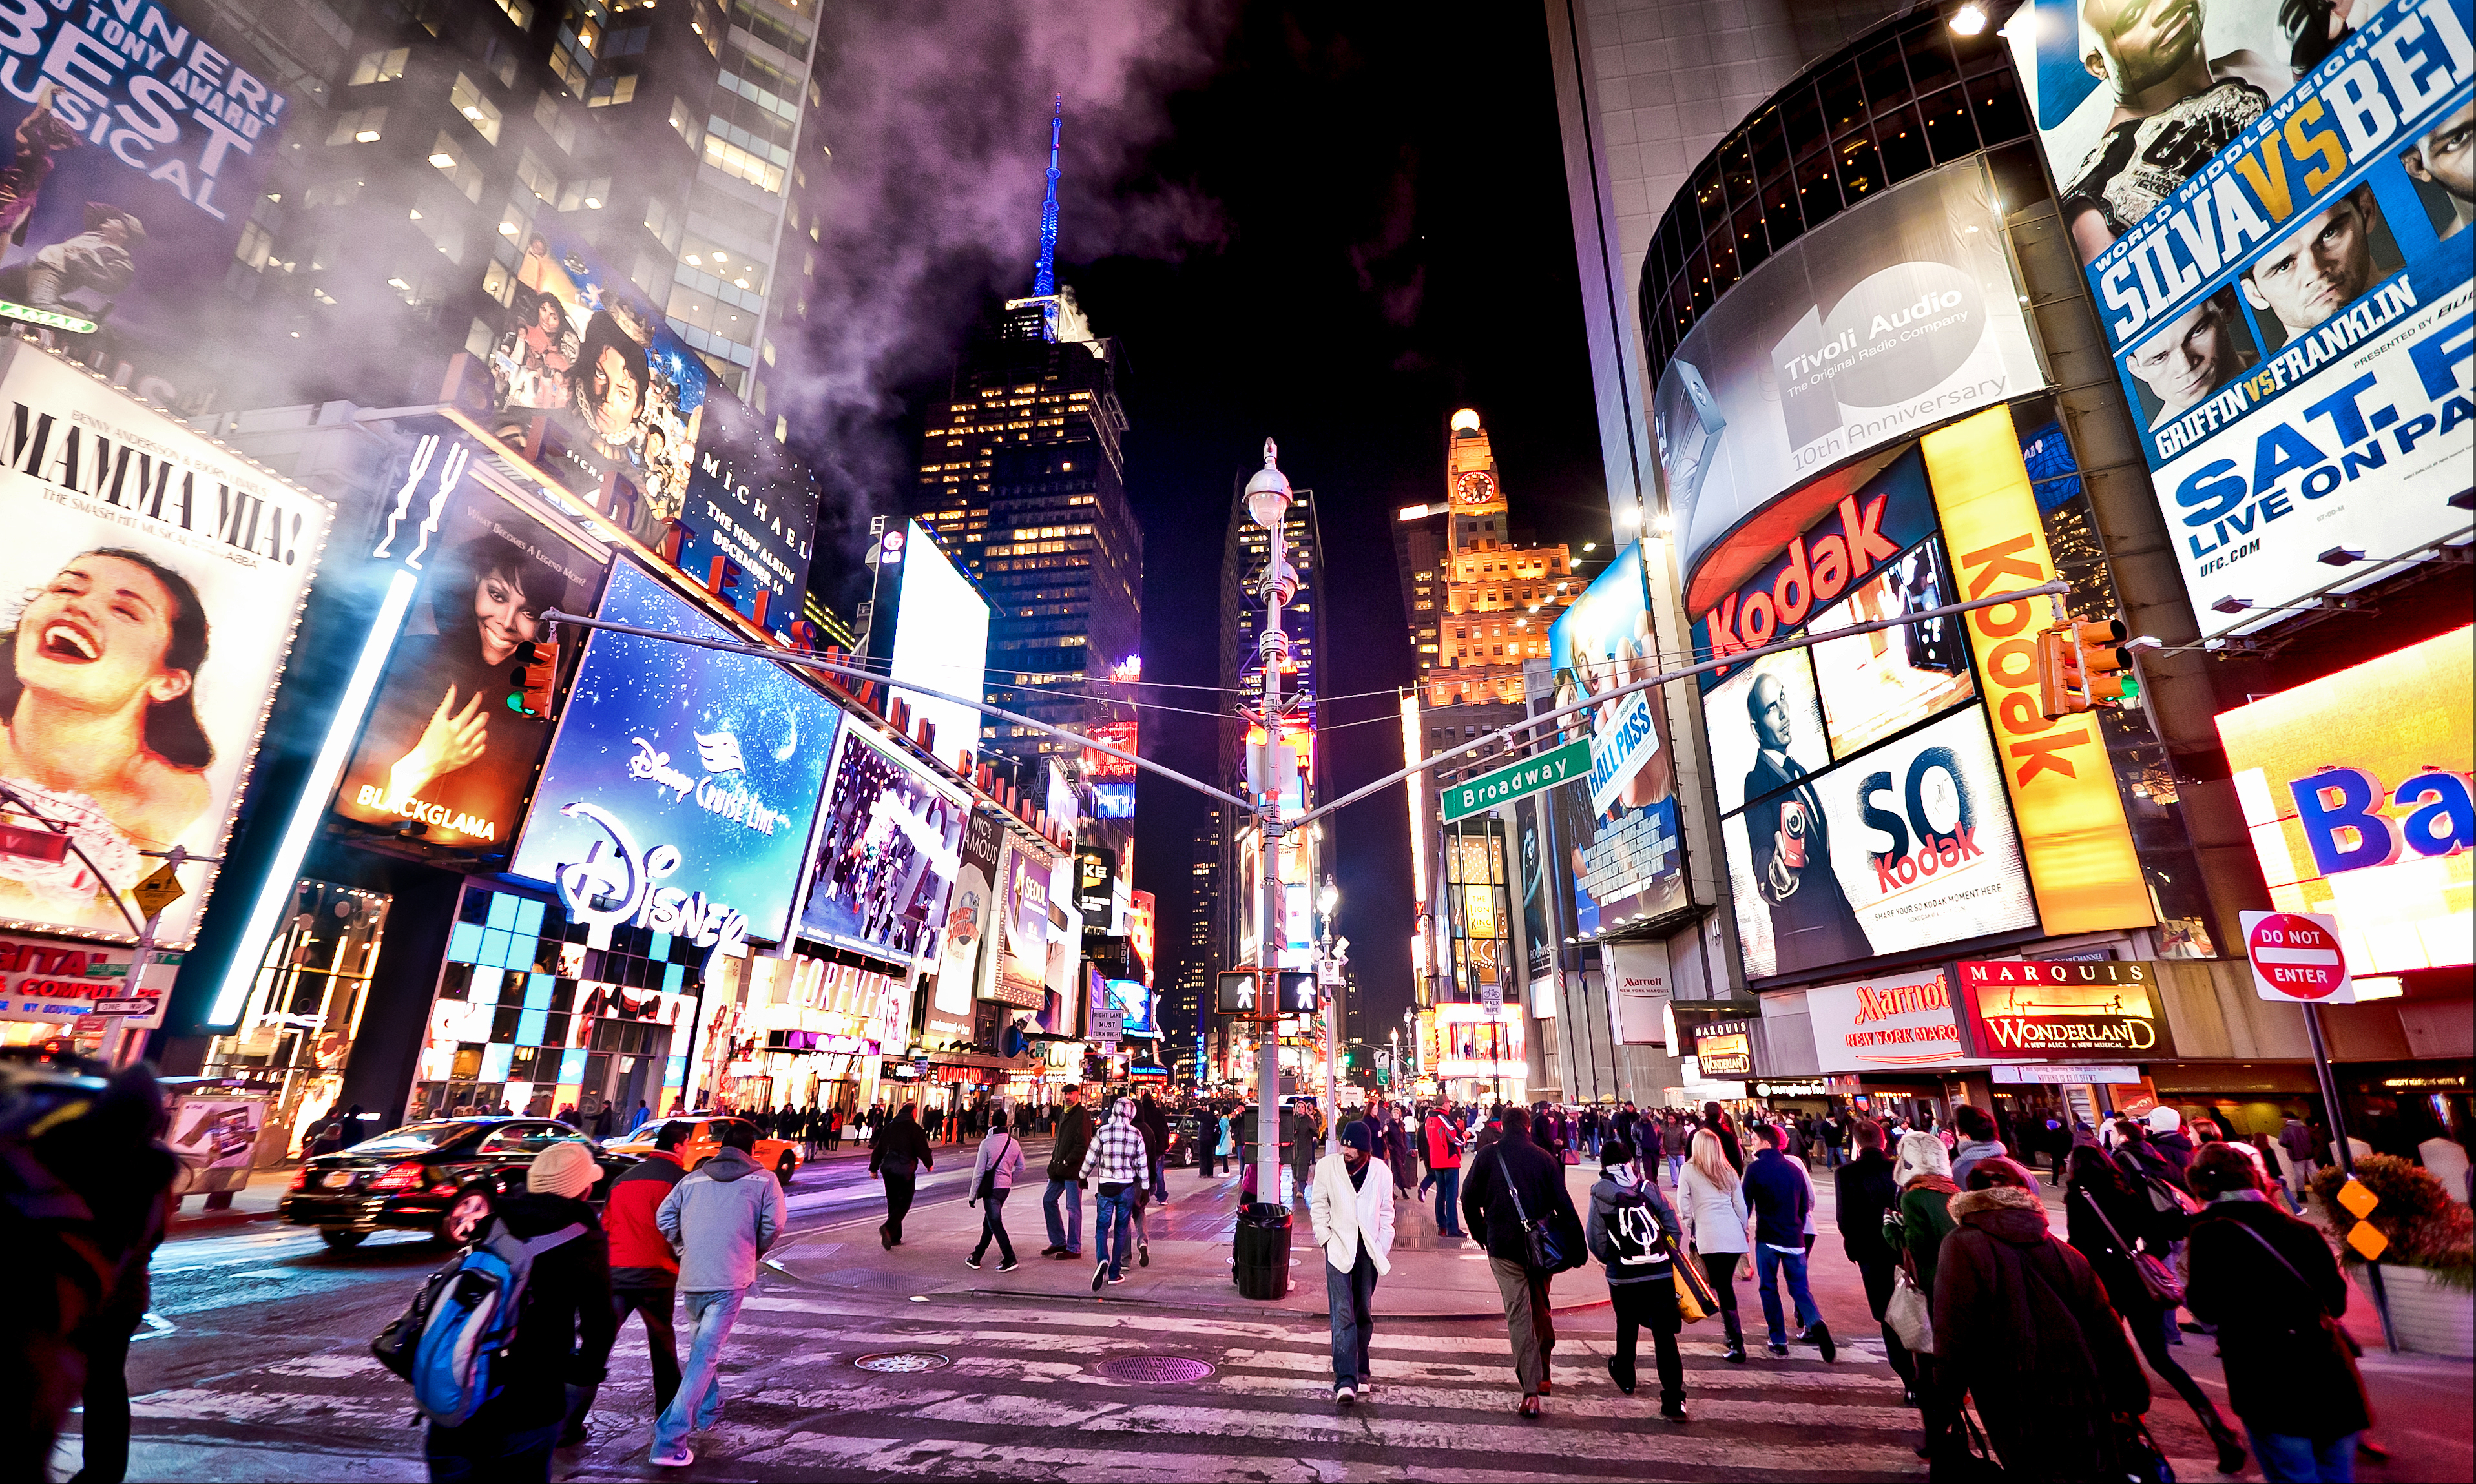 2014-07-11-TimesSquare_editorialuseonly_cAndreyBaydashutterstock_69510376